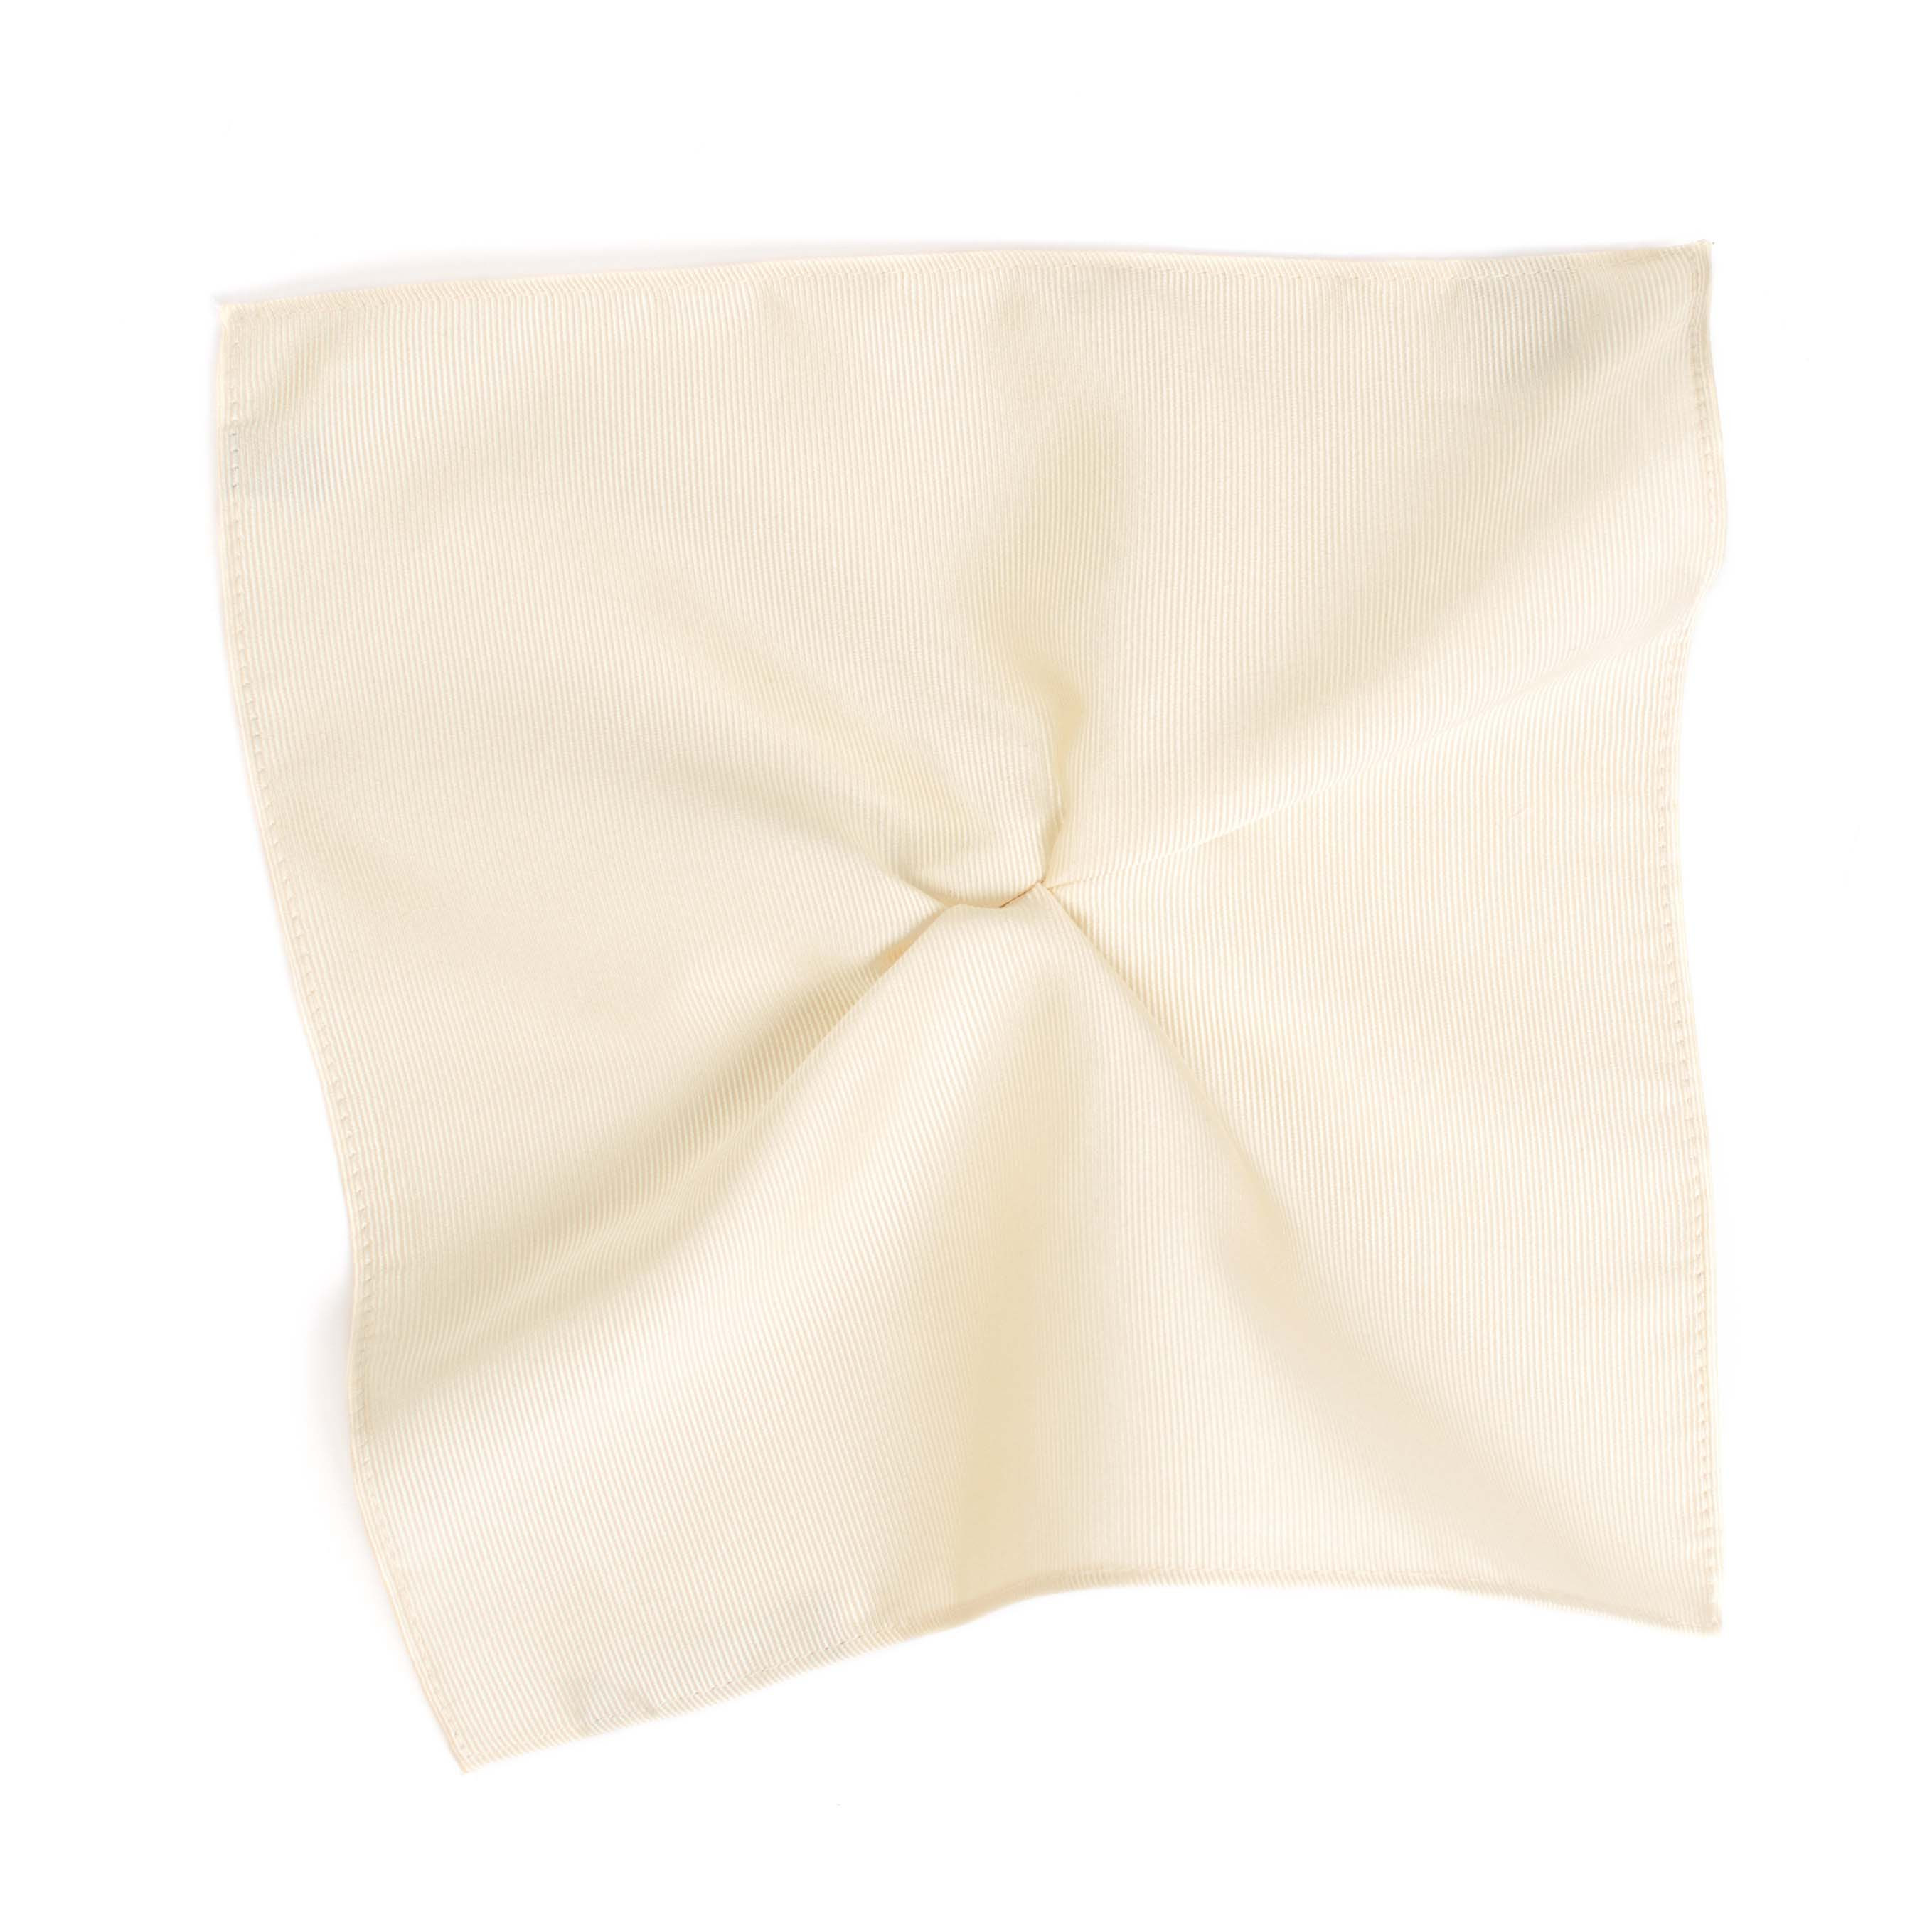 Pocket square classic ivory ribbed